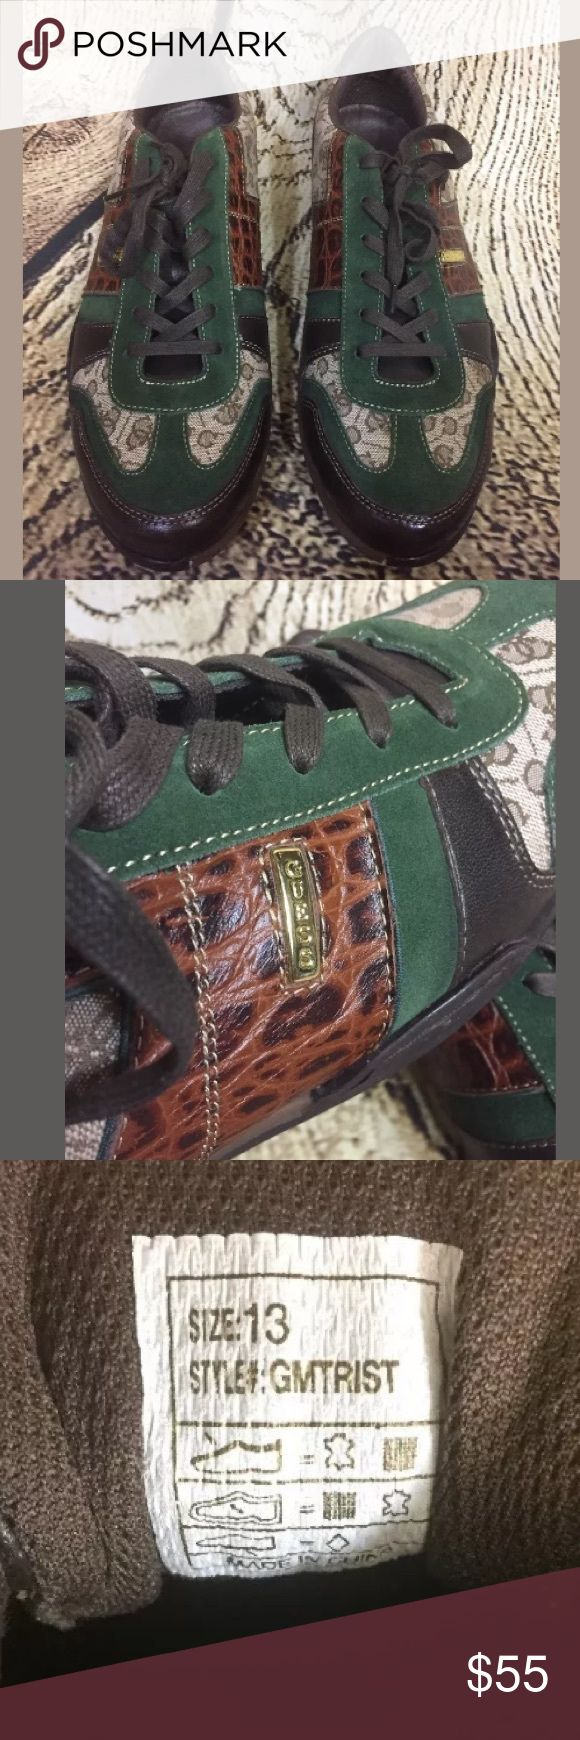 """👟👟Guess Sneakers NEW MENS GUESS BROWN/GREEN MED NATURAL LEATHER """"TRIST"""" SNEAKERS  SIZE 13Mb BRAND NEW NEVER WORN ONLY TO TRY ON Guess Shoes Sneakers"""